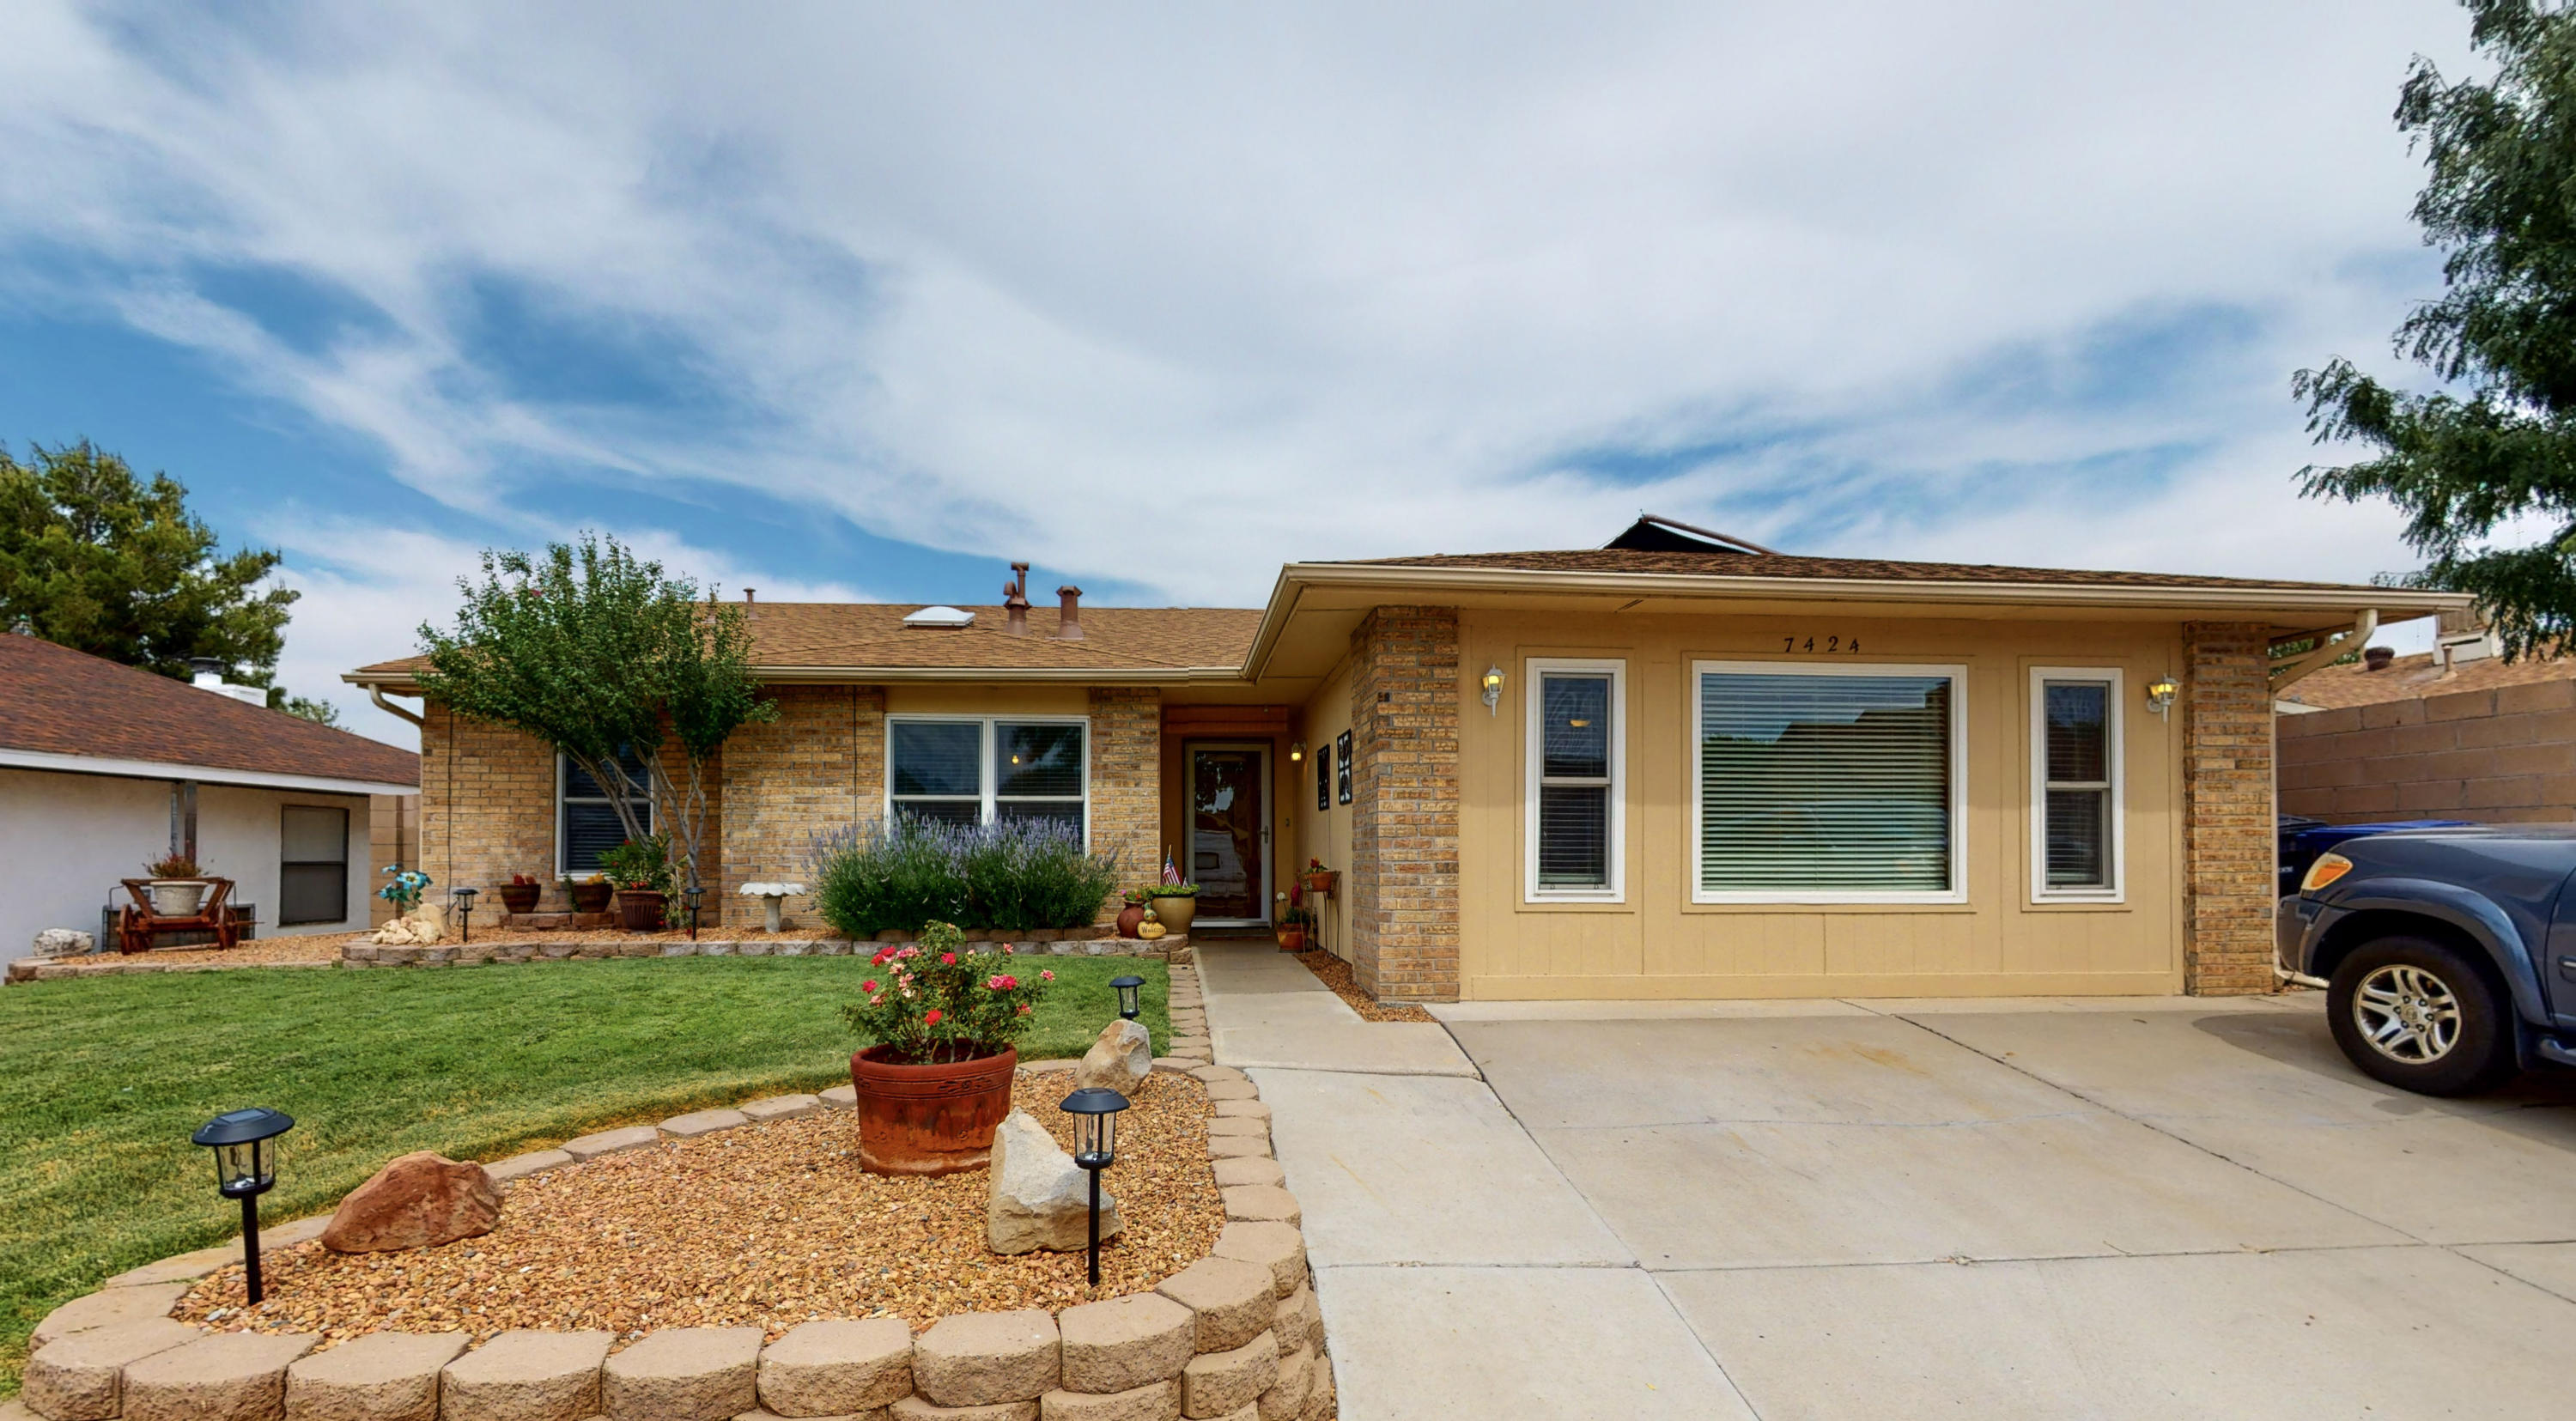 Welcome home in desirable Taylor Ranch! This well cared for one owner home is a must-see, but don't wait this one won't last long! Vaulted ceilings, lots of natural light, and an open concept! Both bathrooms have been modernized with new floors, vanities and shower surrounds. Enjoy cooking your favorite meals in the kitchen that features stainless steel appliances, Cherry Wood cabinets and quartz counter-tops. Cooling off during the rest of the hot summer months in the backyard oasis with the in-ground swimming pool! Sit back, relax under the large covered back patio, and enjoy your private pool! Updates include a Brand New Roof, Fresh Paint, Two New Mini-splits, Schedule a private showing or take a virtual walk-through tour today!